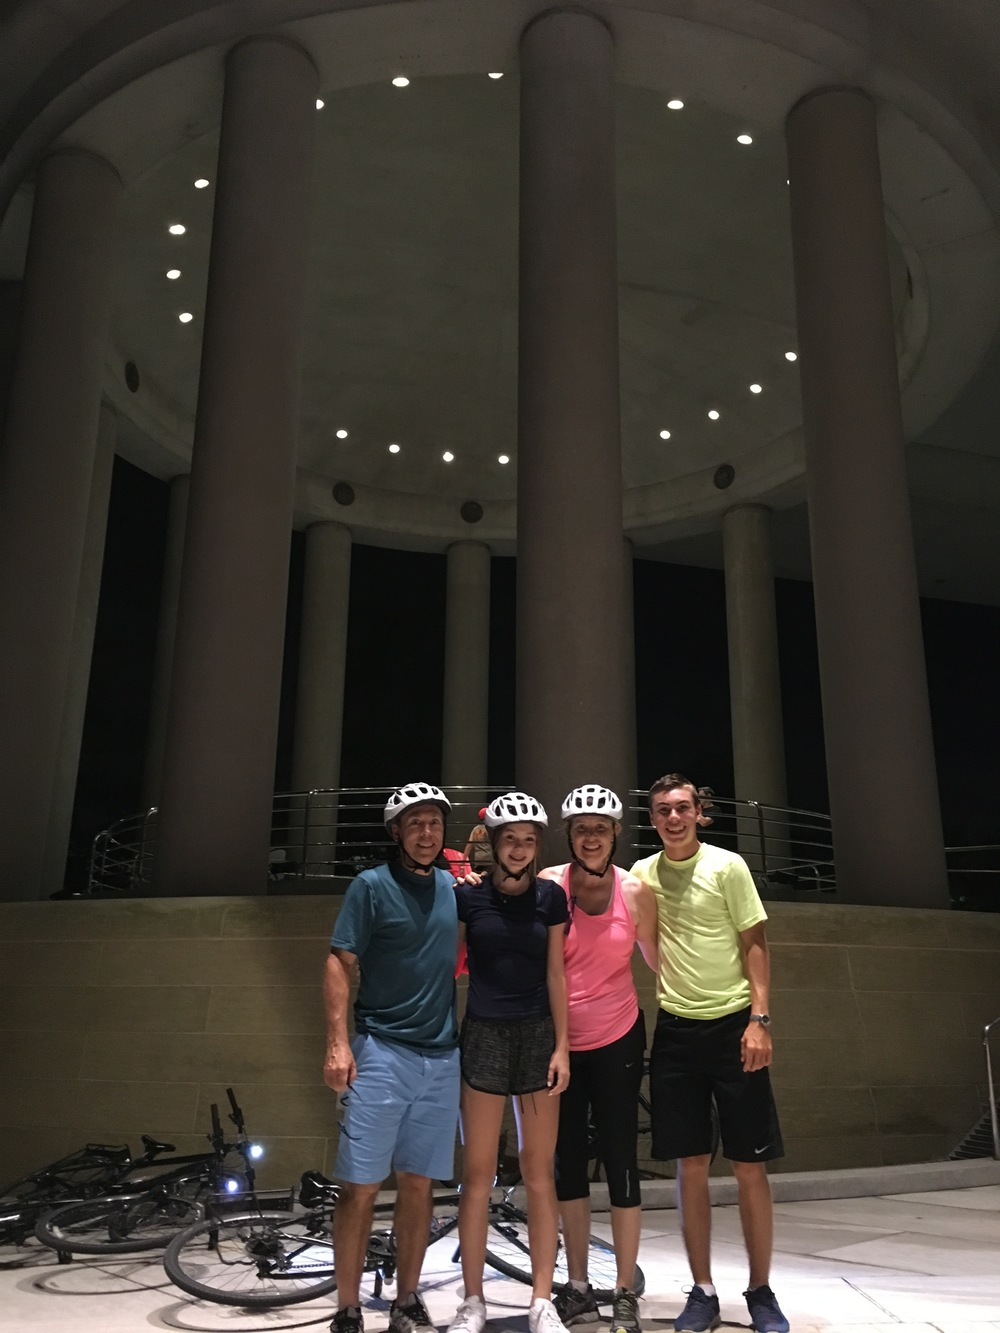 The Horwood family of Toronto visiting the Rotunda of the Provinces at the Embassy of Canada and the cool echo chamber effect